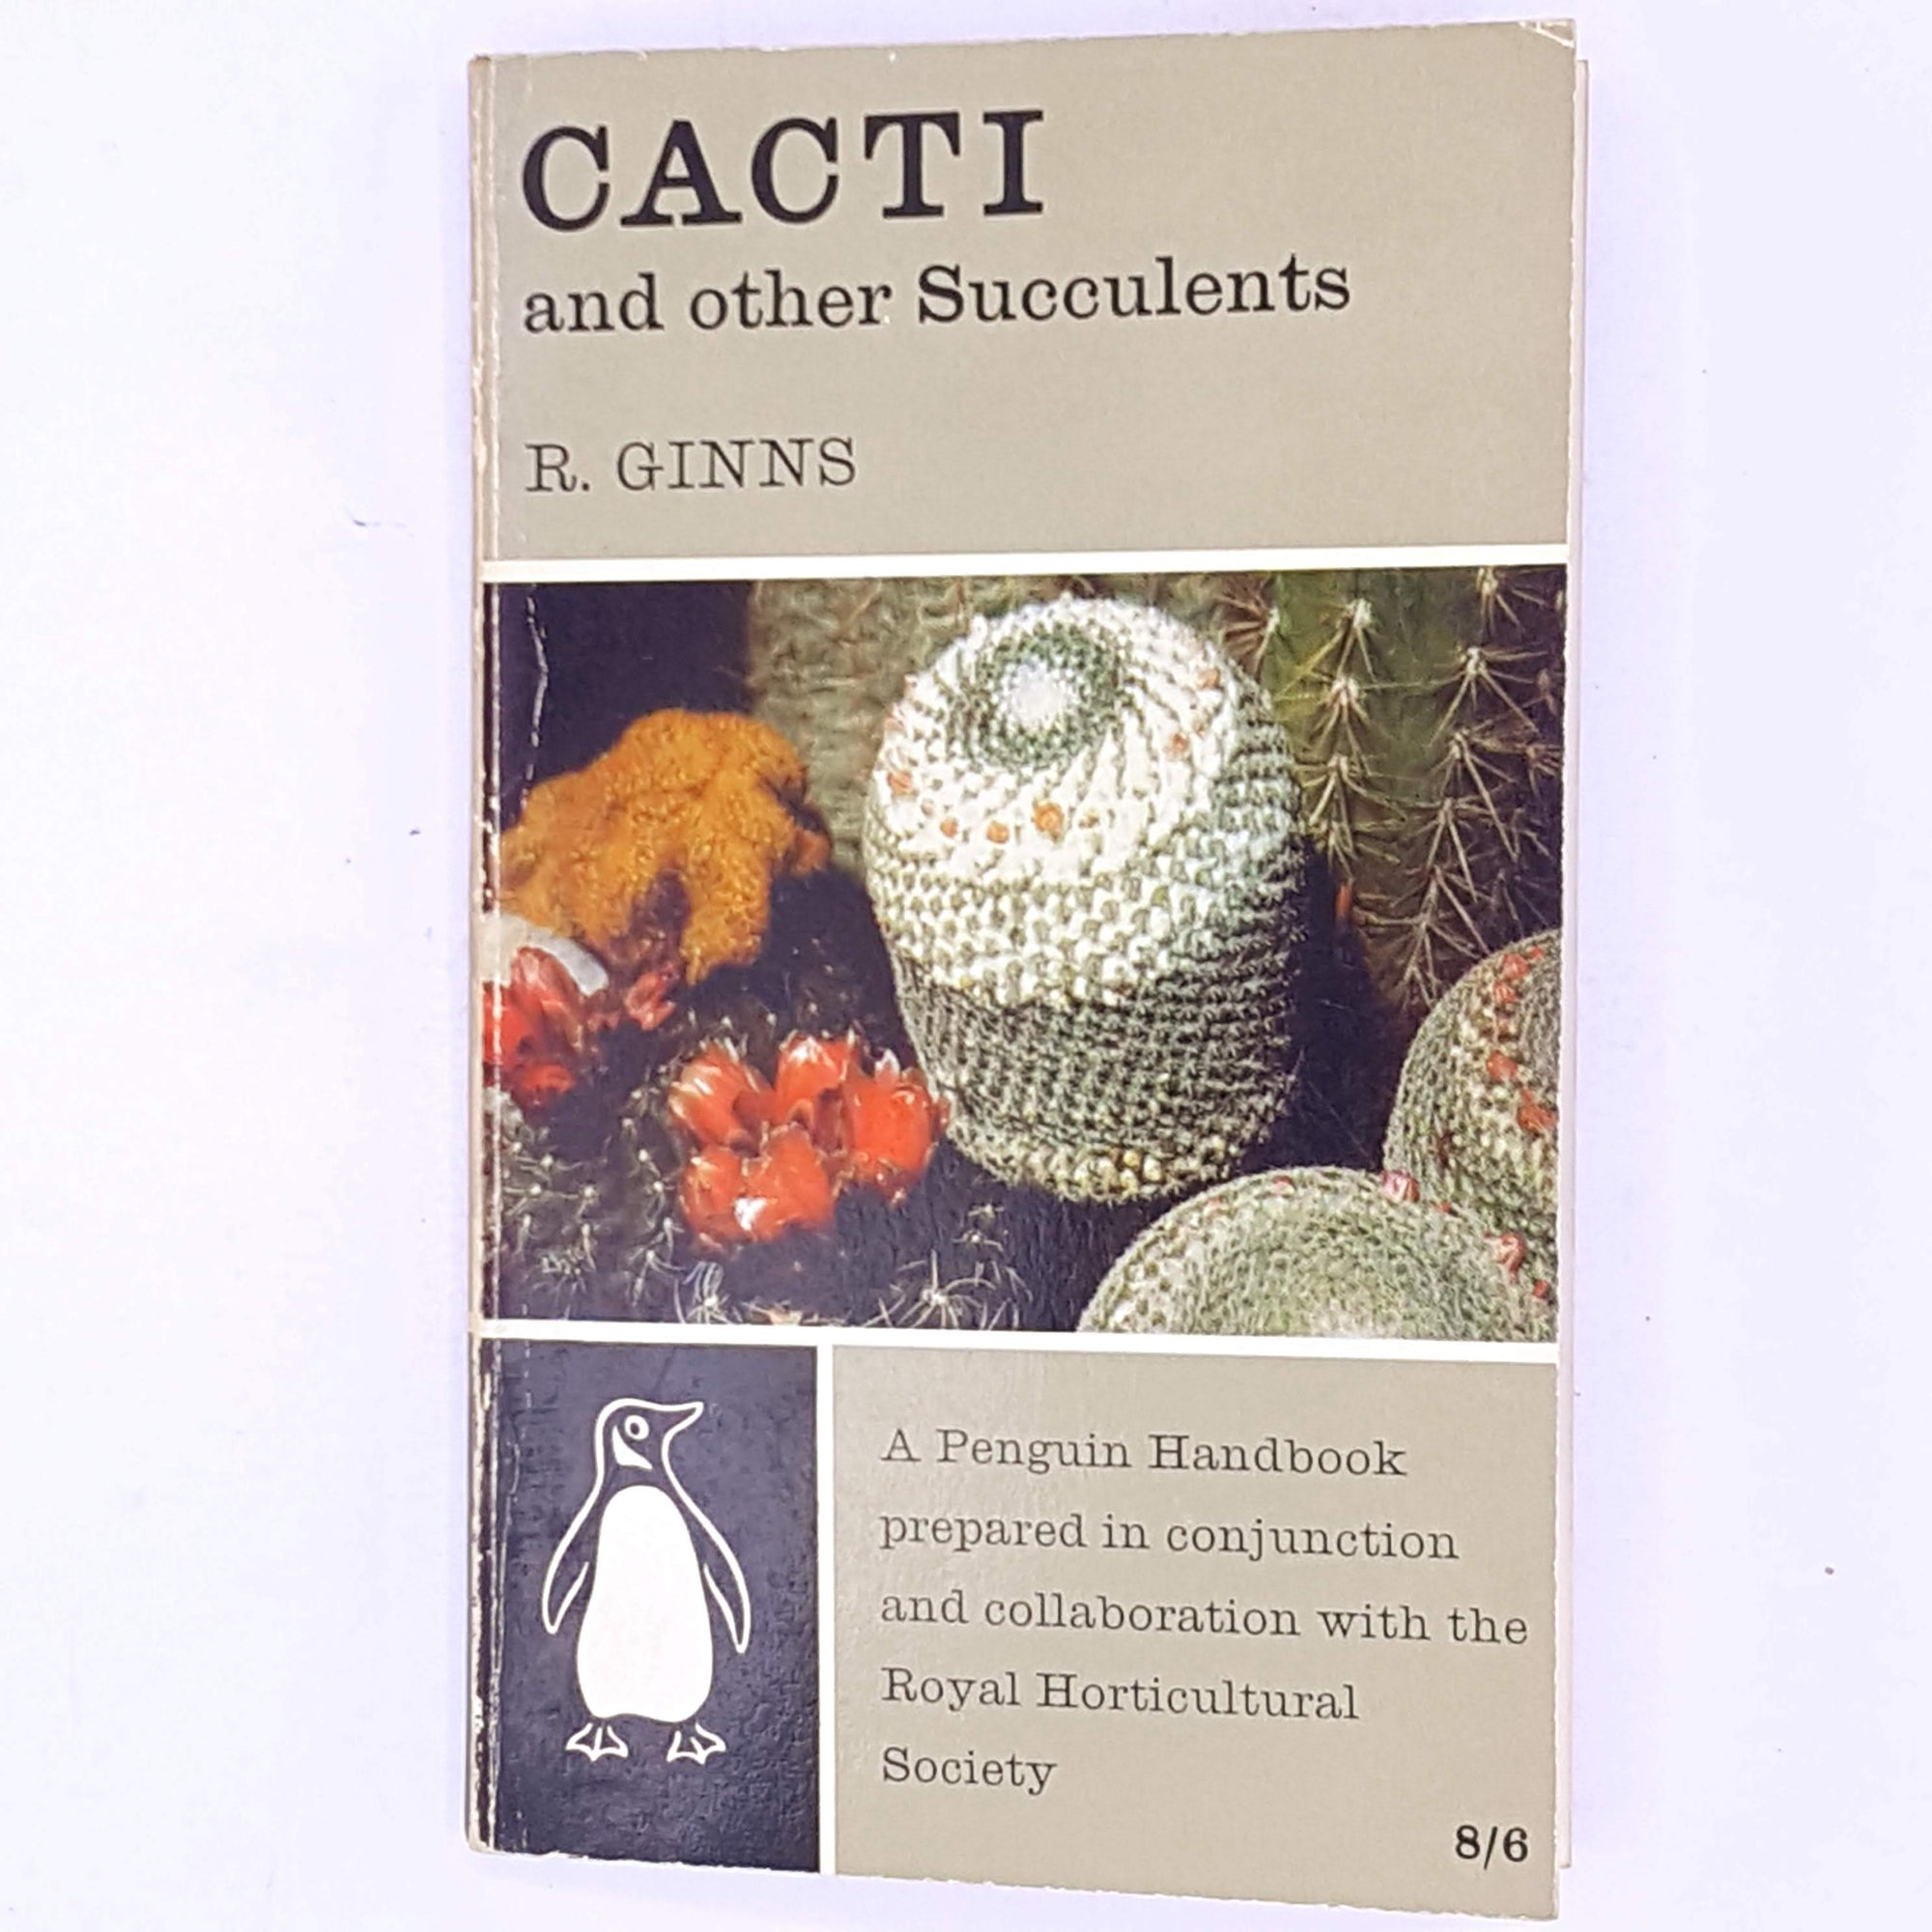 Penguin, Cacti and other Succulents by R. Ginns